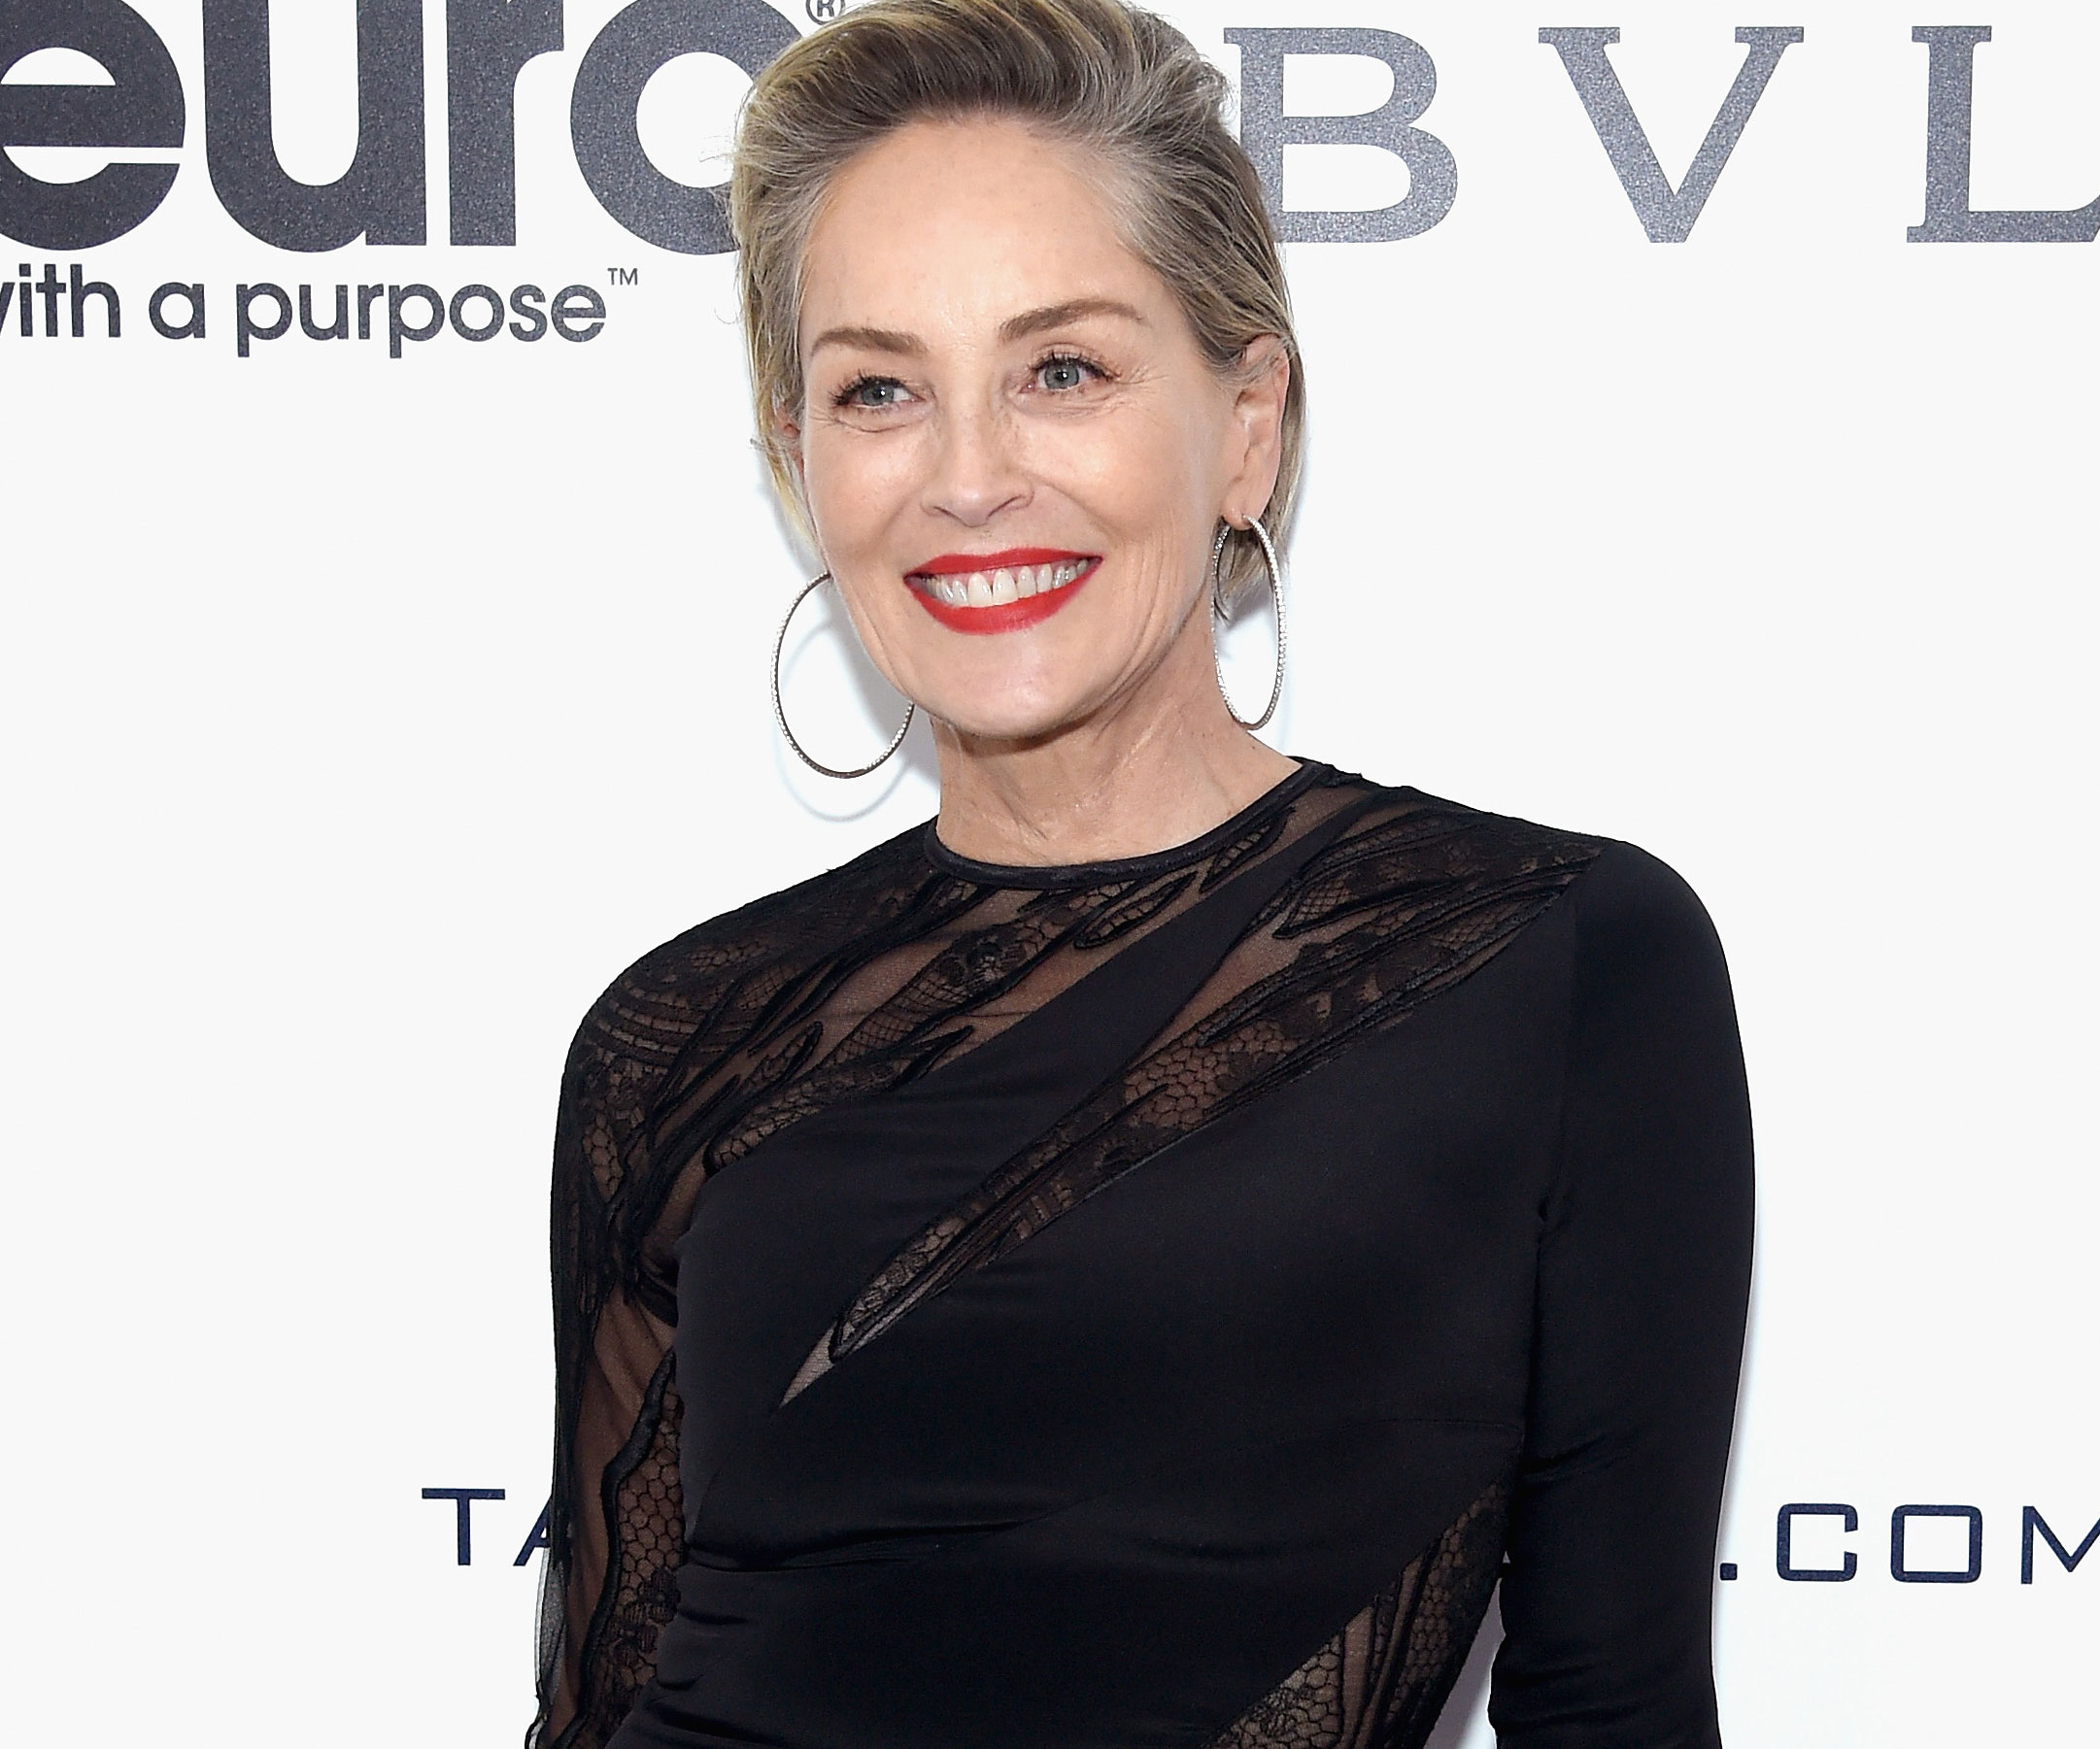 Sharon Stone Bursts Out Laughing When Asked If She's Been Sexually Harassed